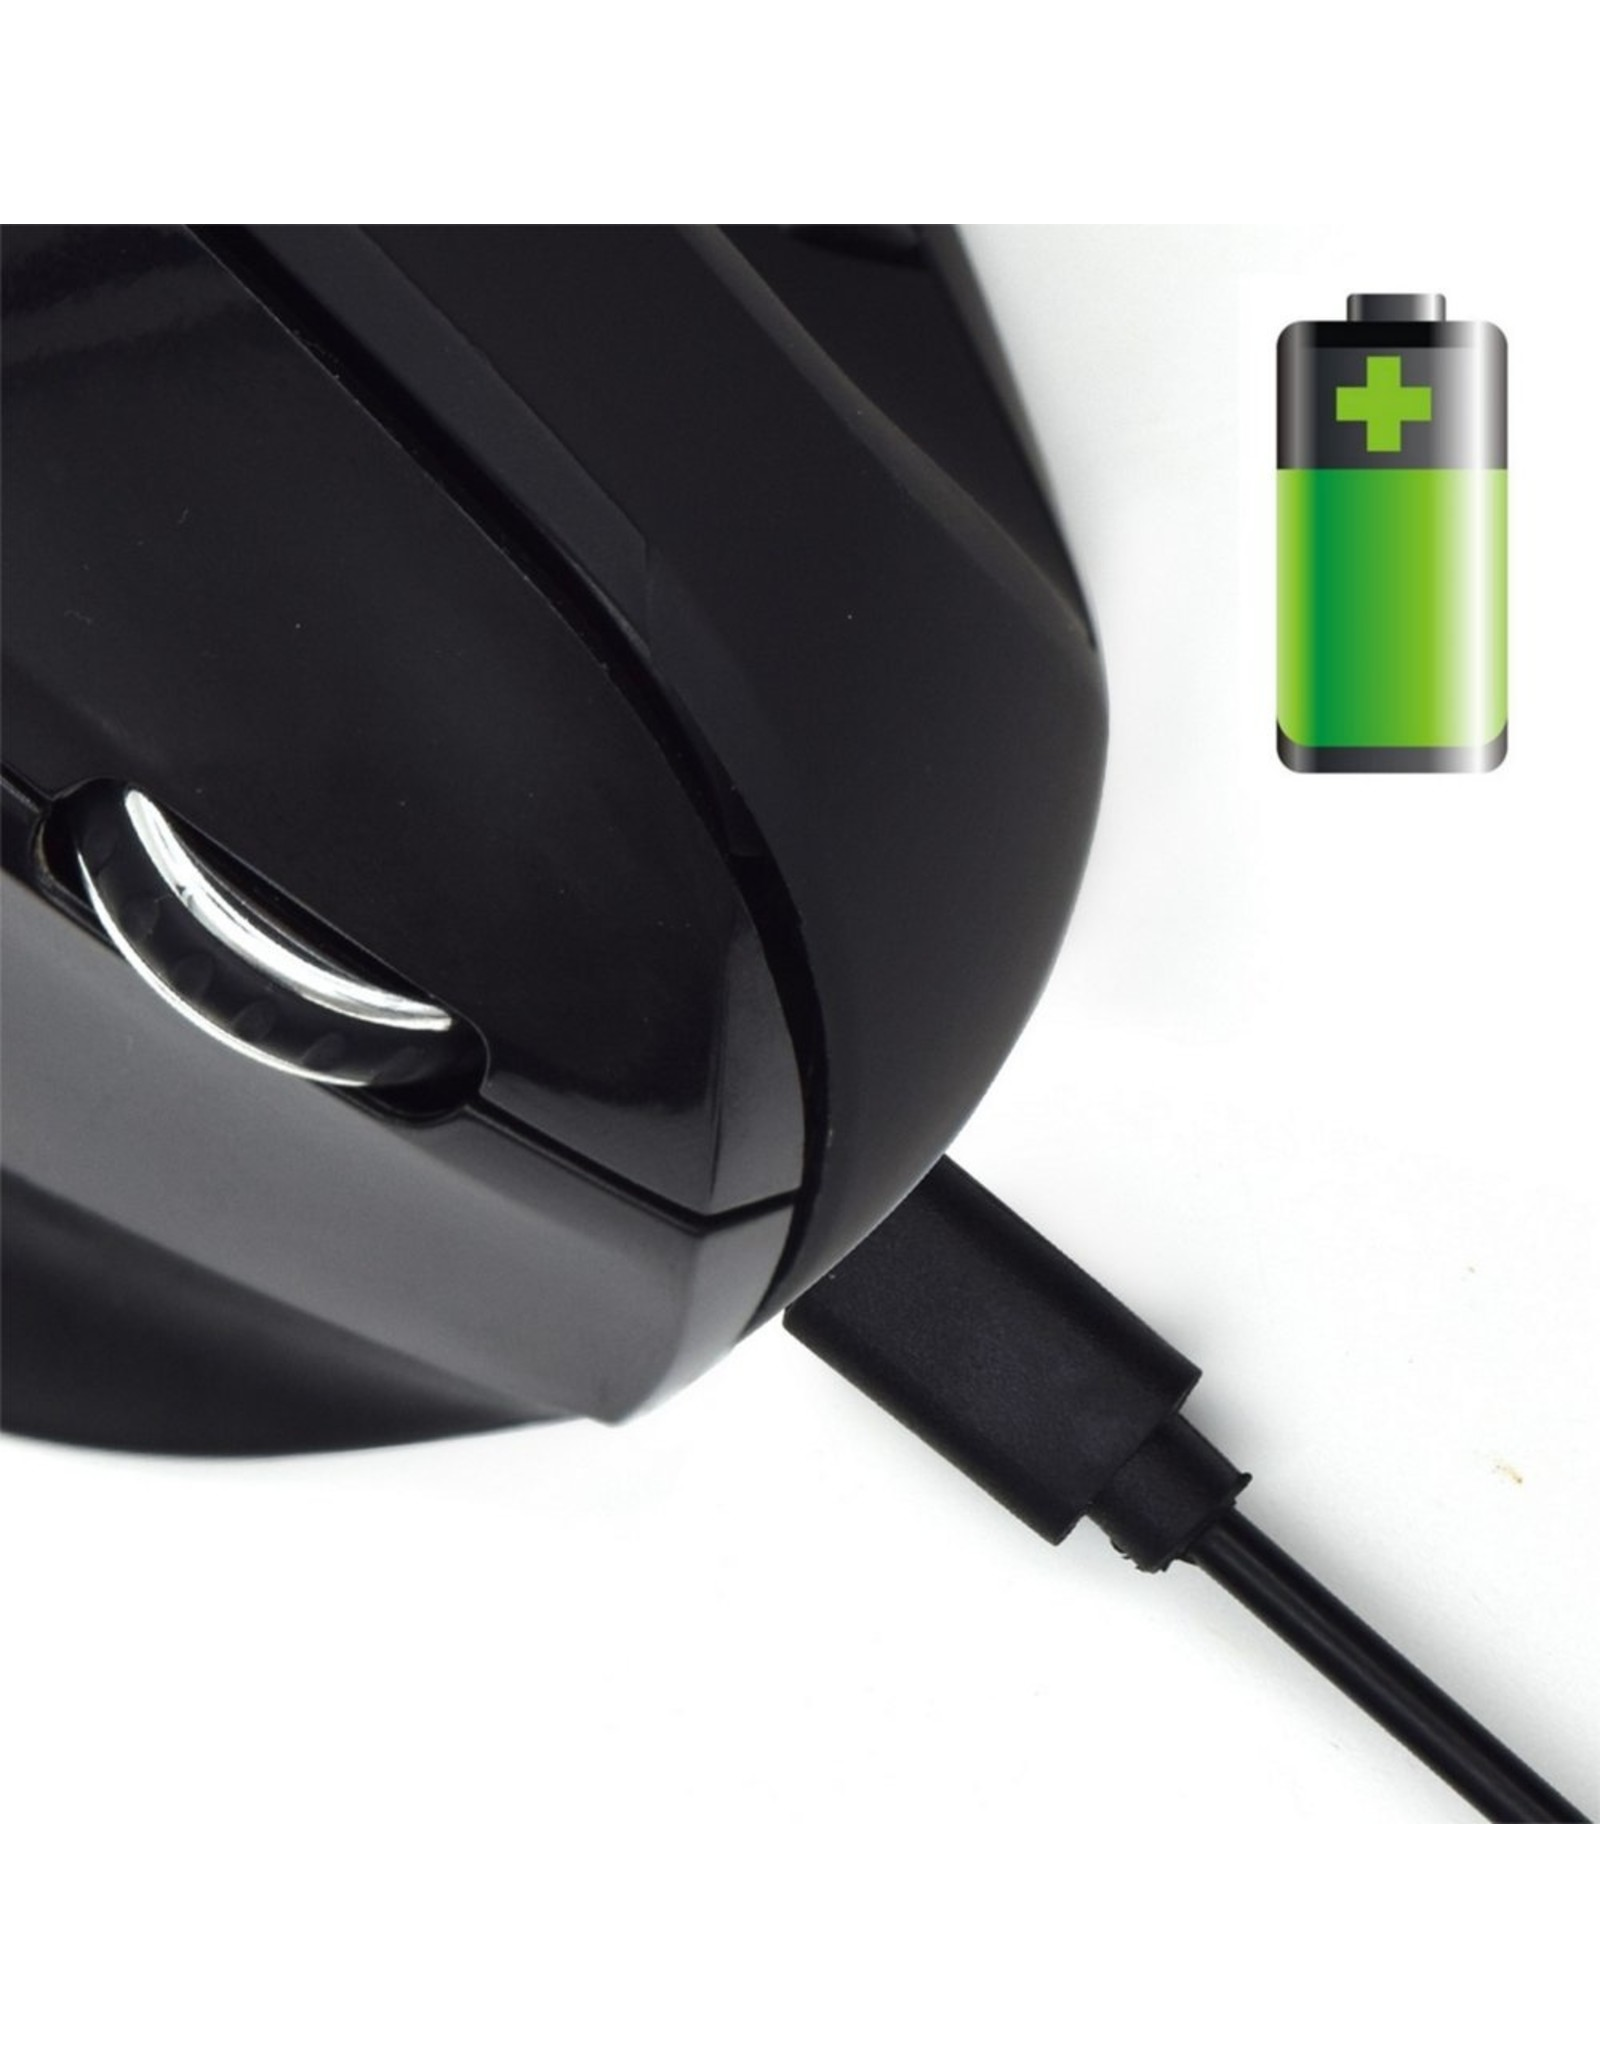 Ewent Wireless Ergonomic mouse rechargeable